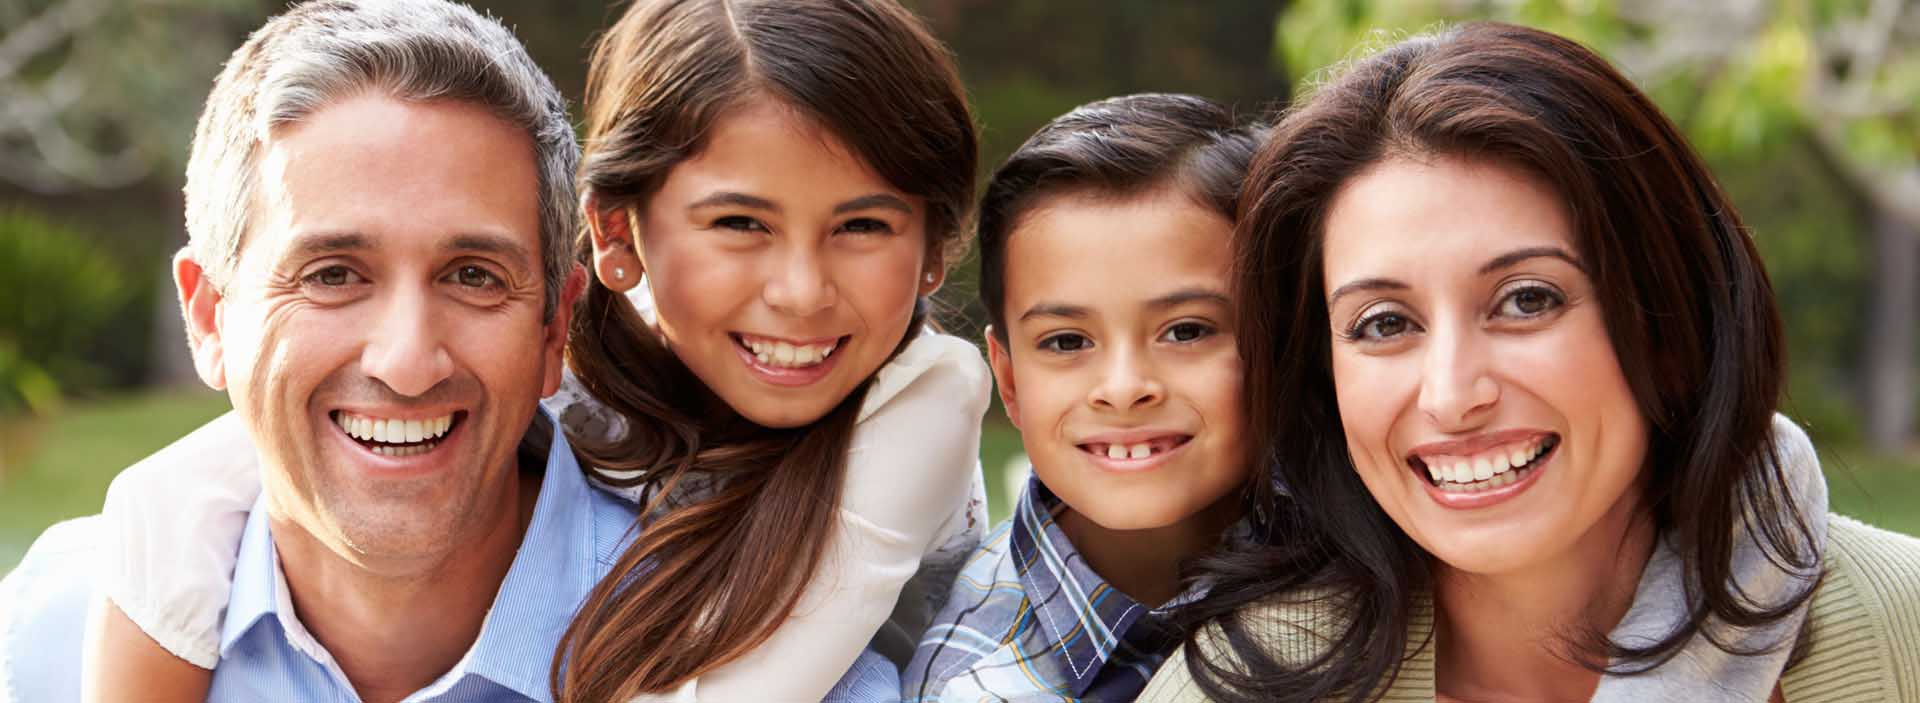 Your Family Deserves The Absolute Best Technology Modern Day Dentistry Has To Offer